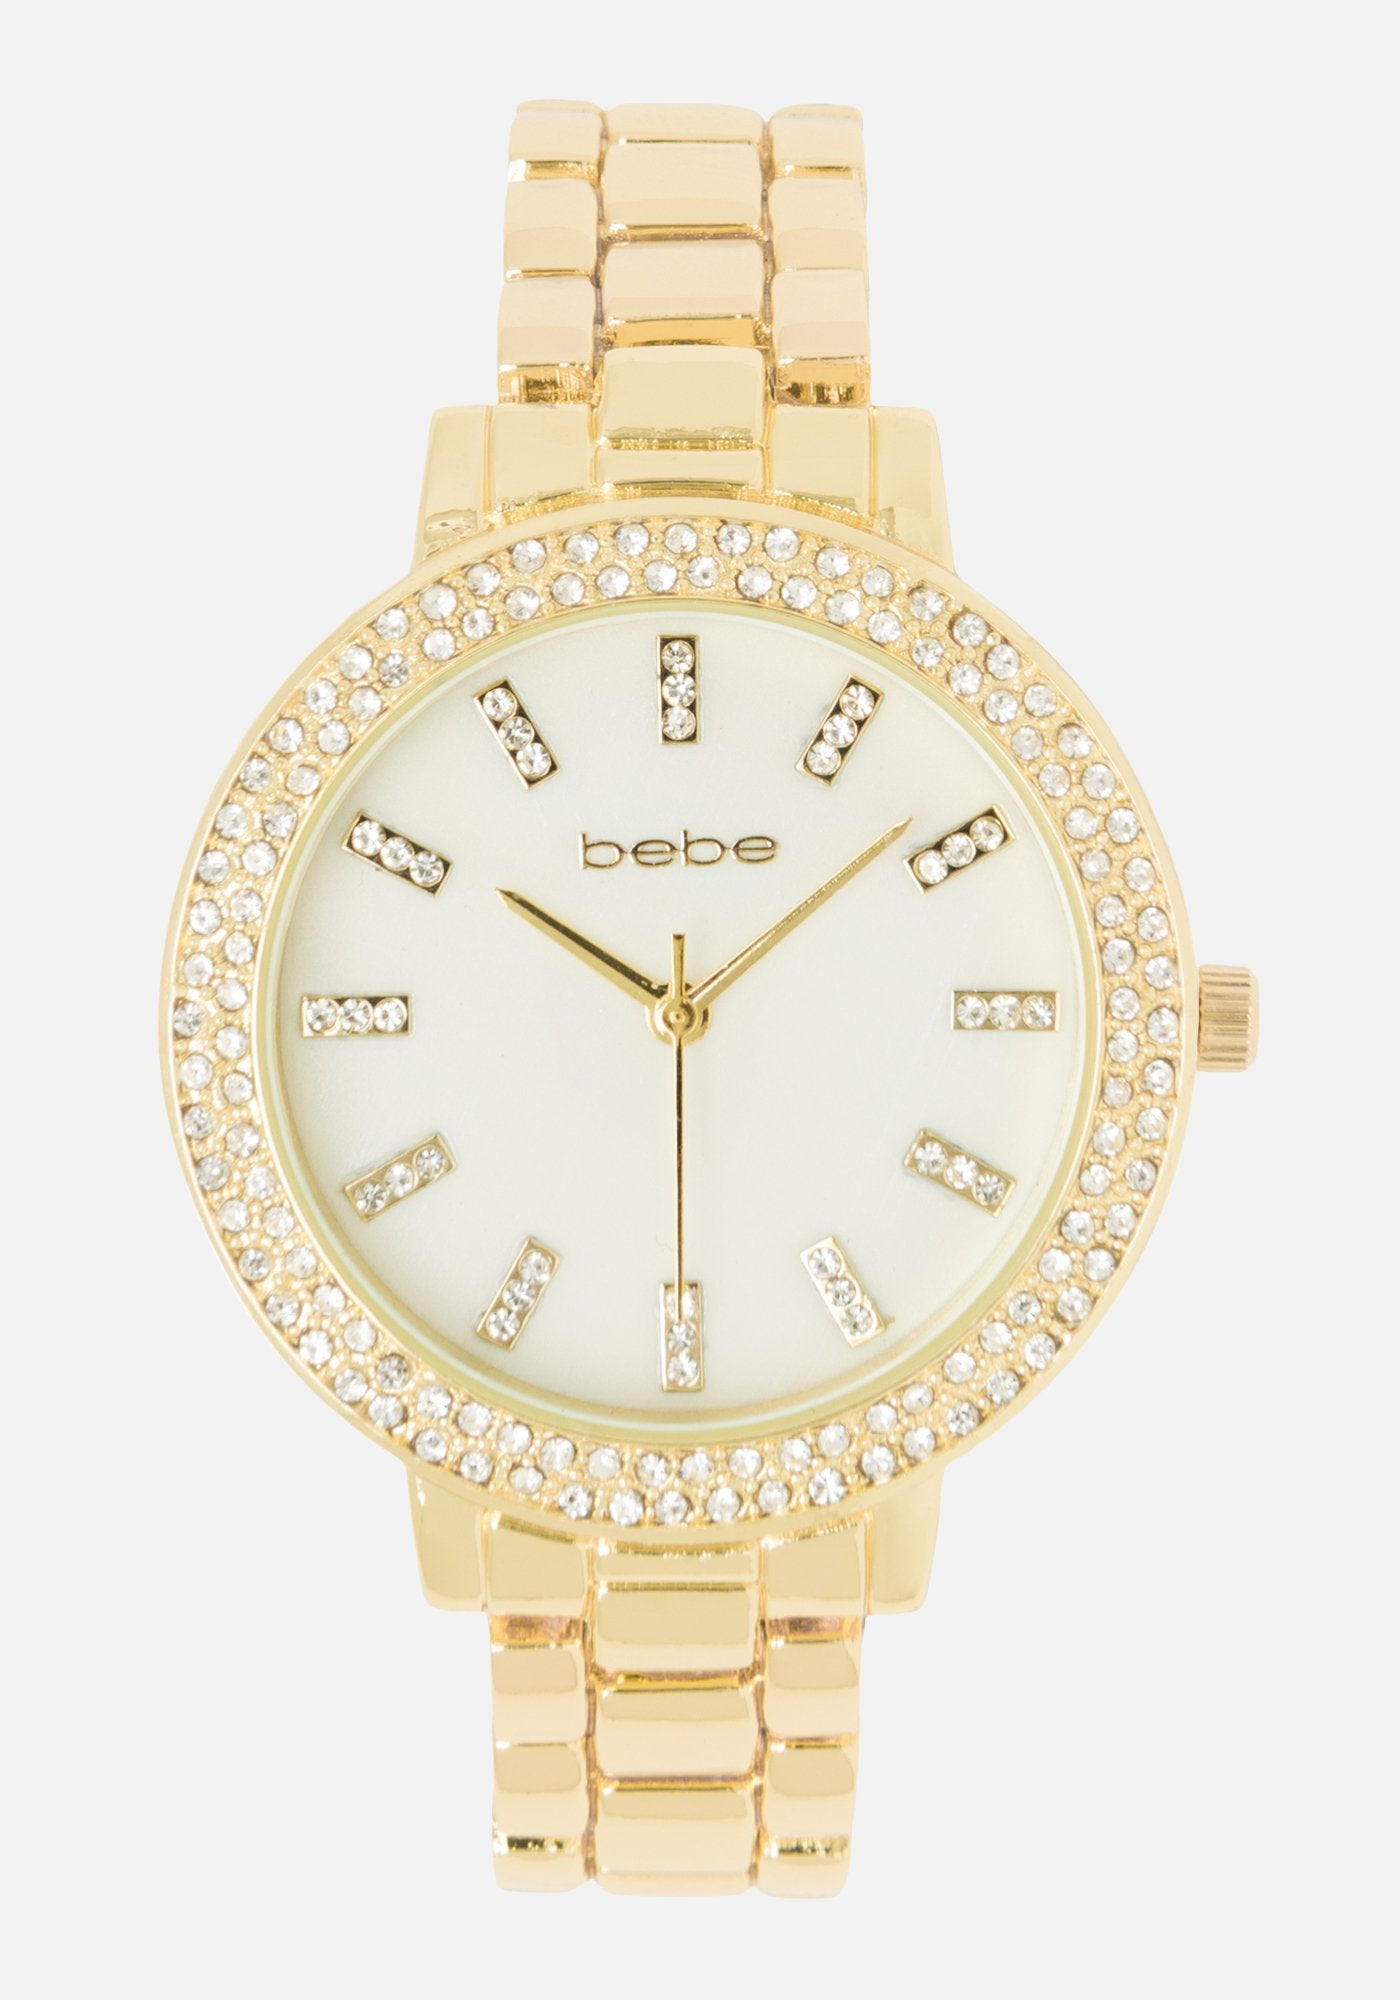 Bebe Women's Pearlized Dial Watch in GOLD